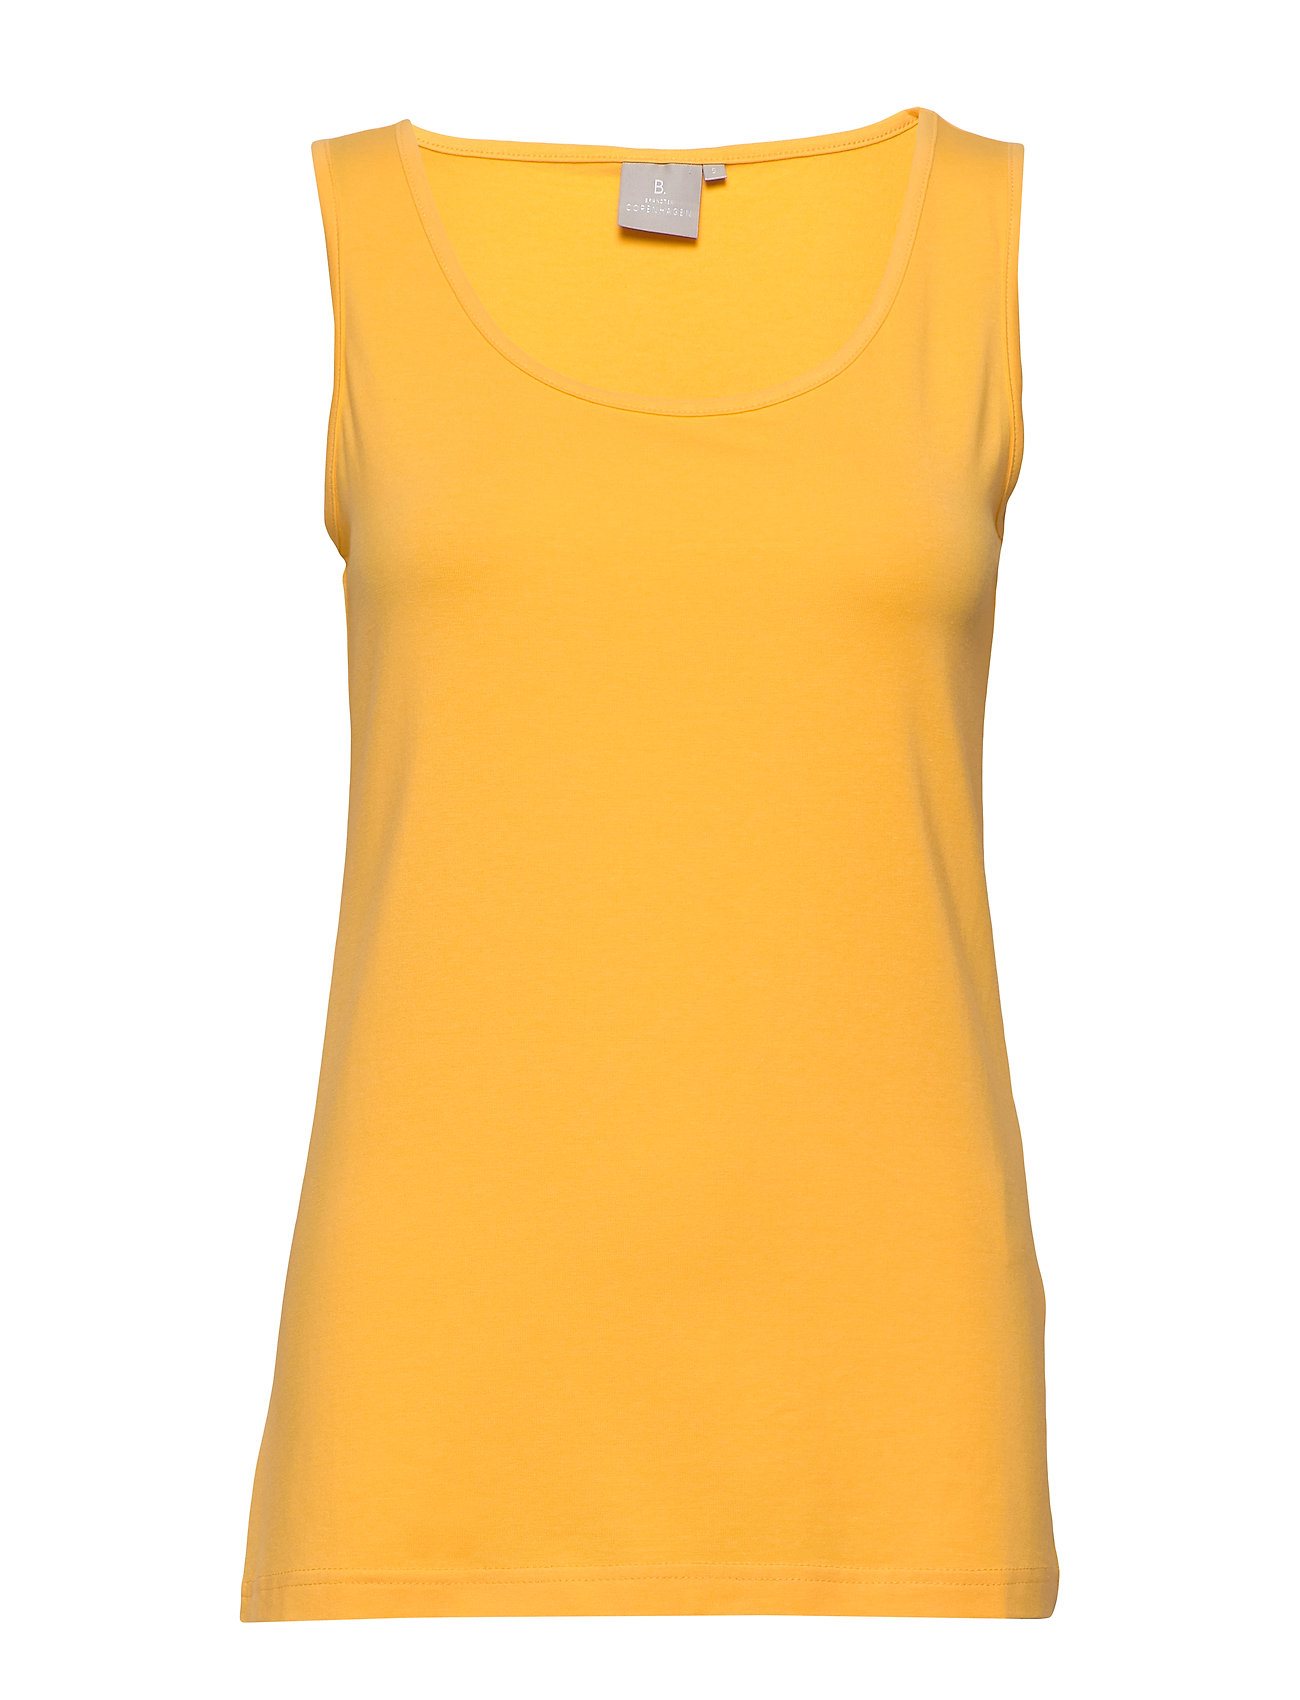 Image of Sleeveless-Jersey Top Ærmeløs Top Gul Brandtex (3347376695)